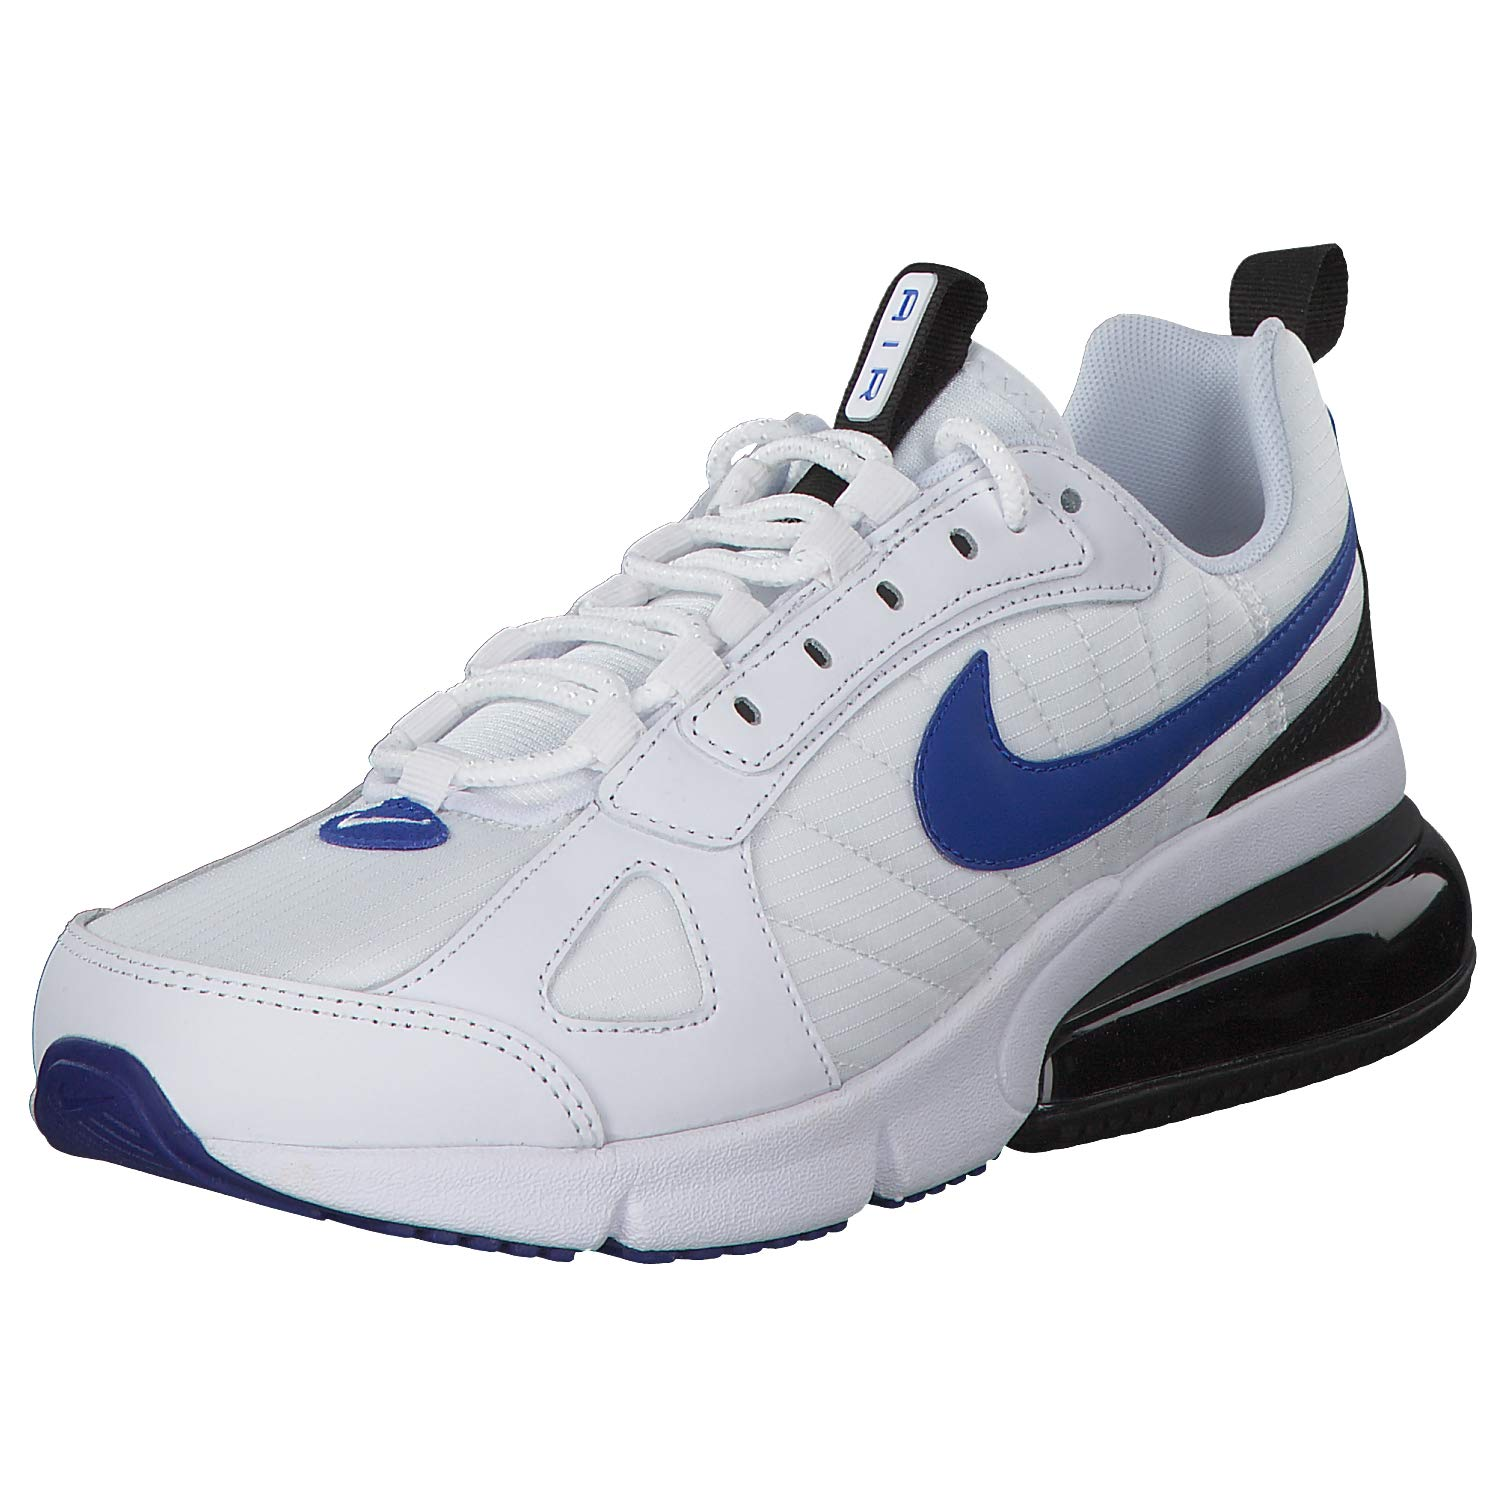 quality design 97949 fb8a4 Amazon.com | Nike Men's Air Max 270 Futura Running Shoes ...